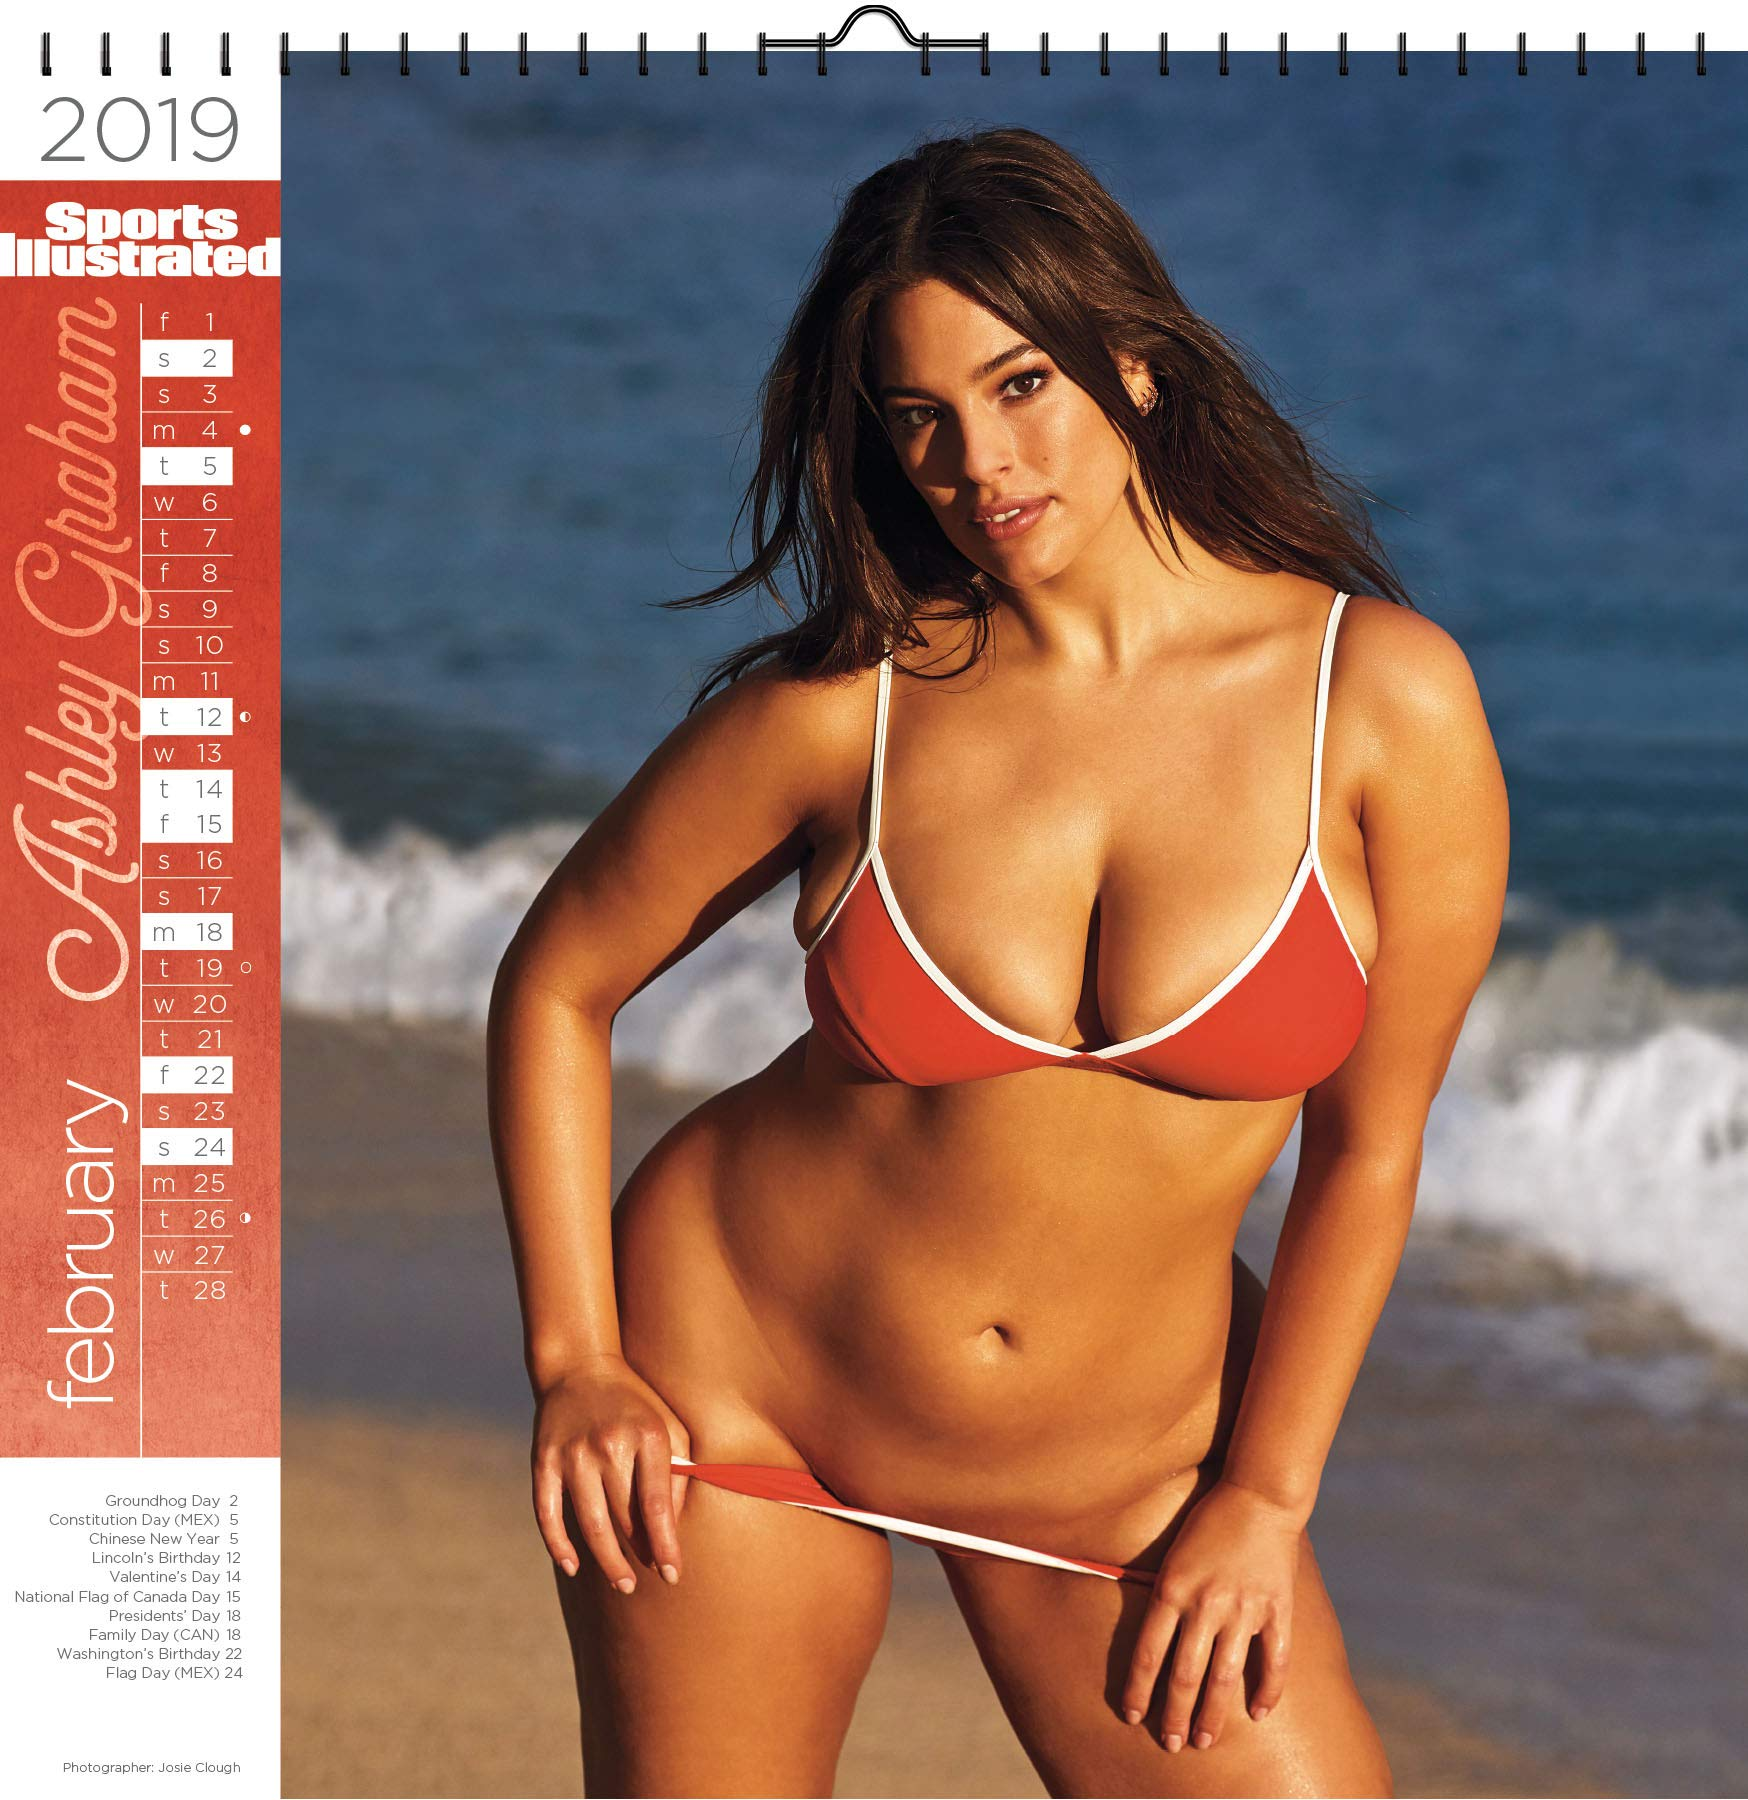 illustrated swimsuit sports calendar wall calendars deluxe si 2020 models issue edition cover swim swimsuits sport bikini